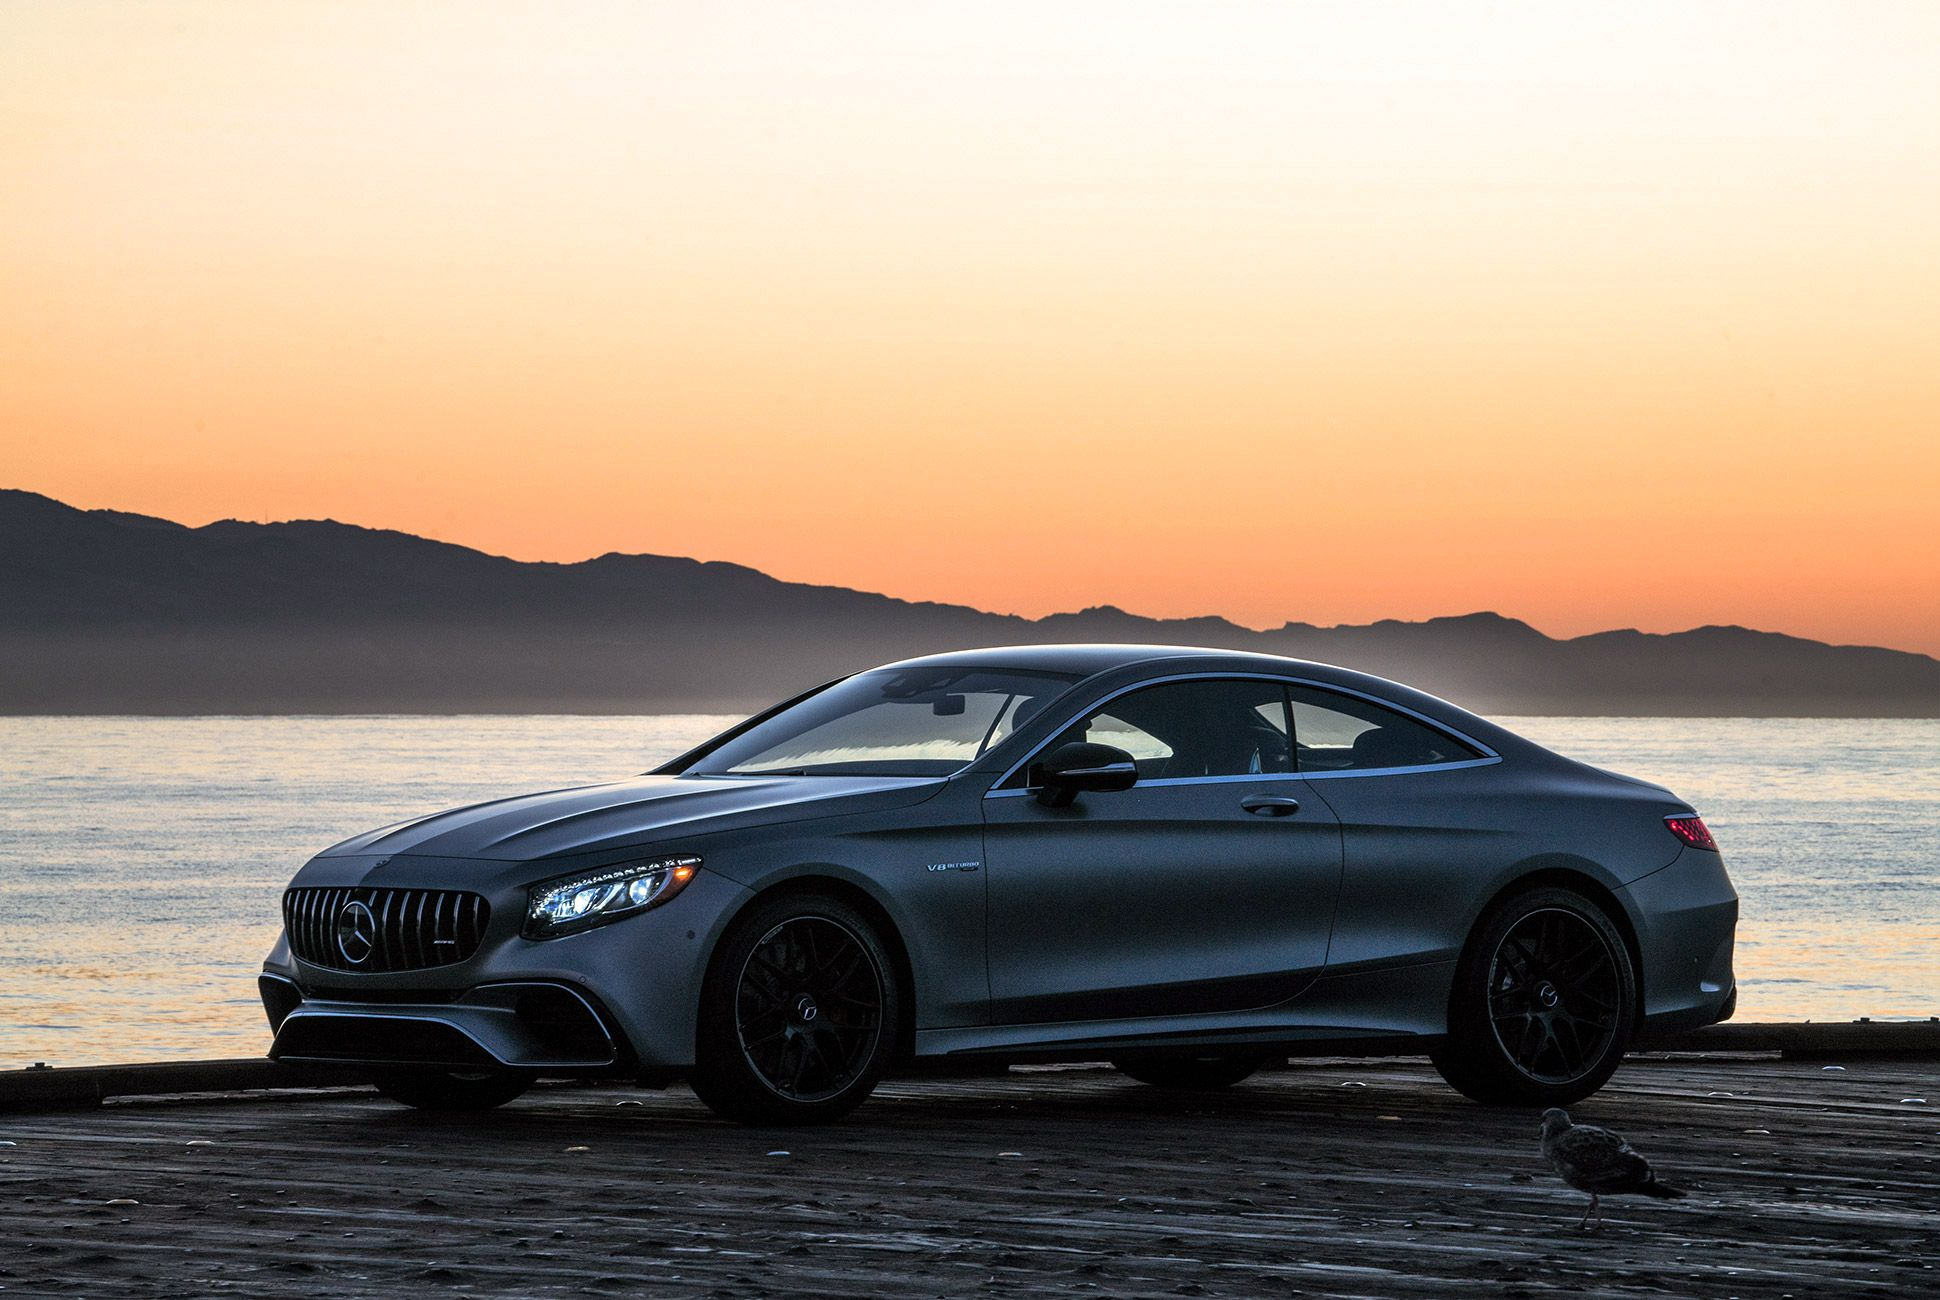 Mercedes-Benz-S63-AMG-Coupe-Review-gear-patrol-1